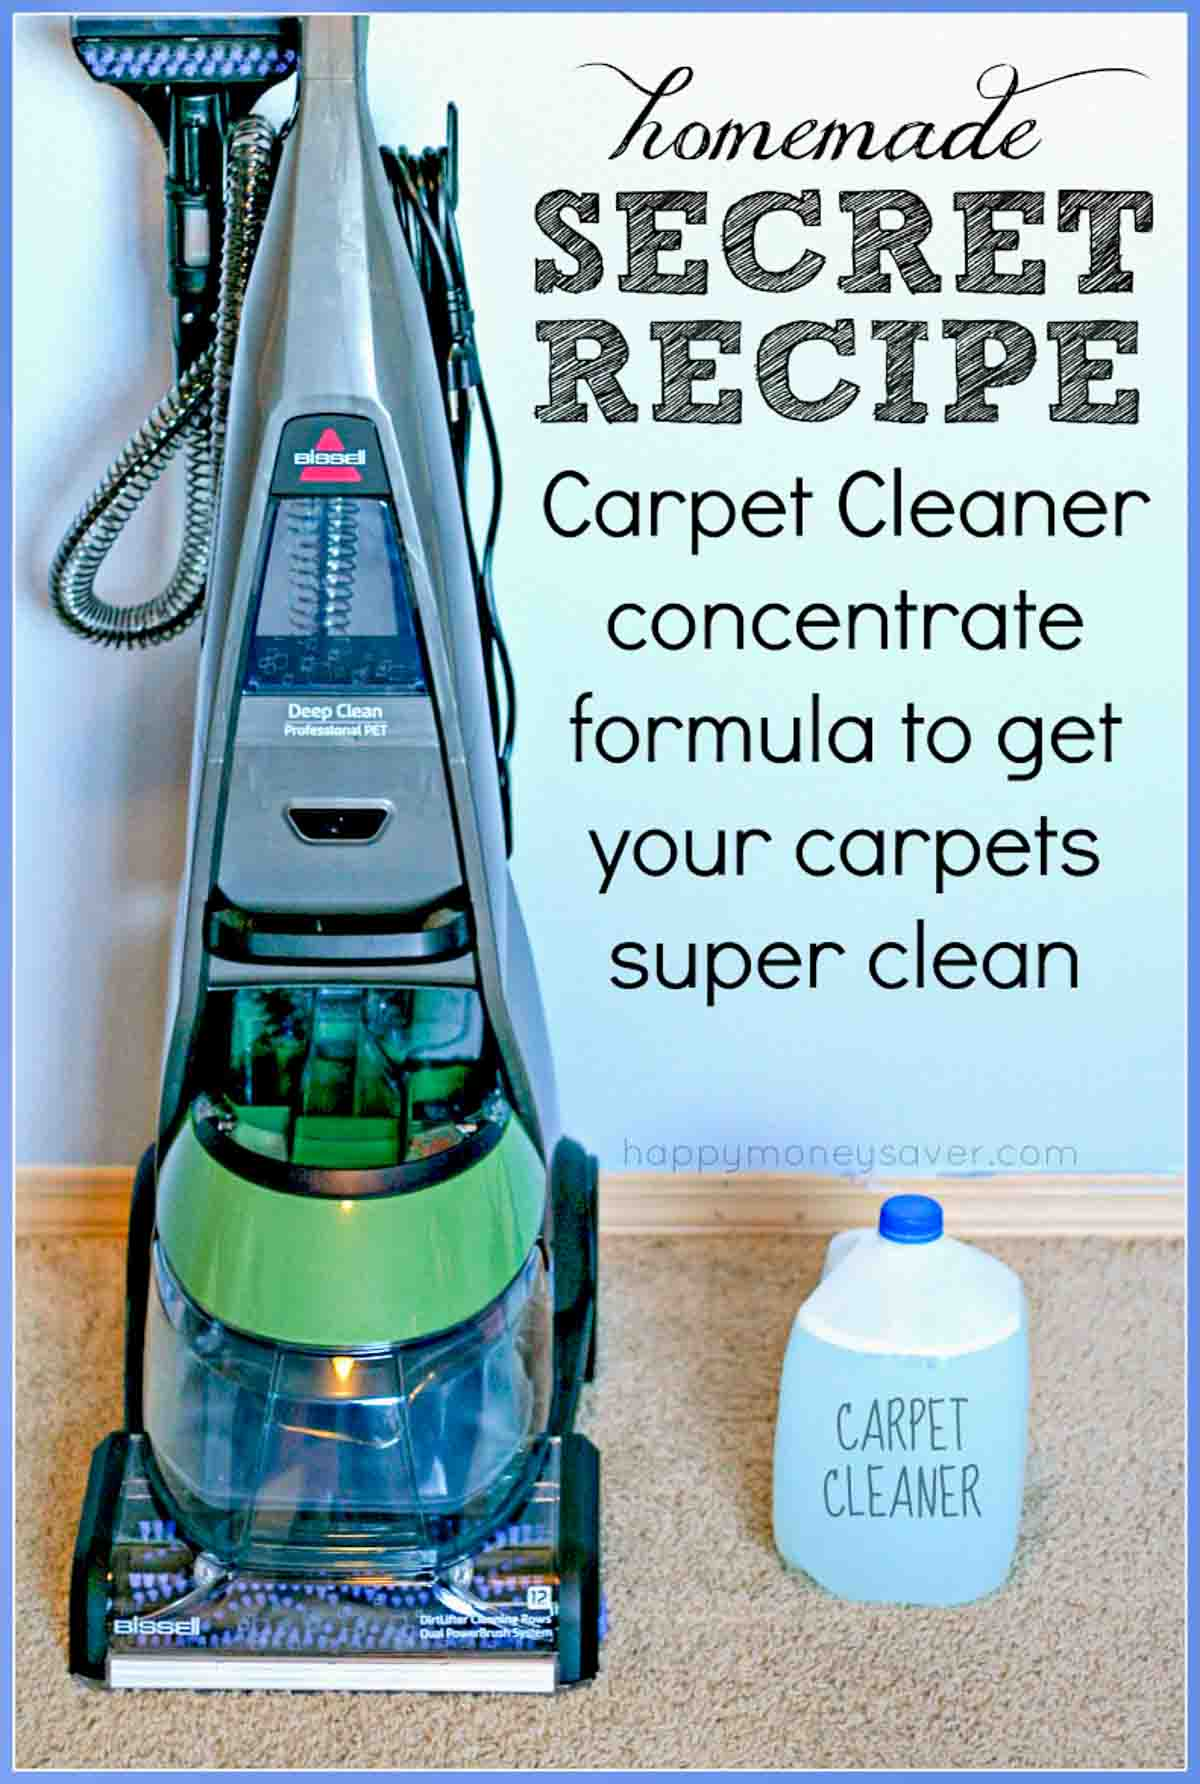 Bissell Carpet Shampoo Machine with Homemade Carpet Cleaner Solution in a gallon container.